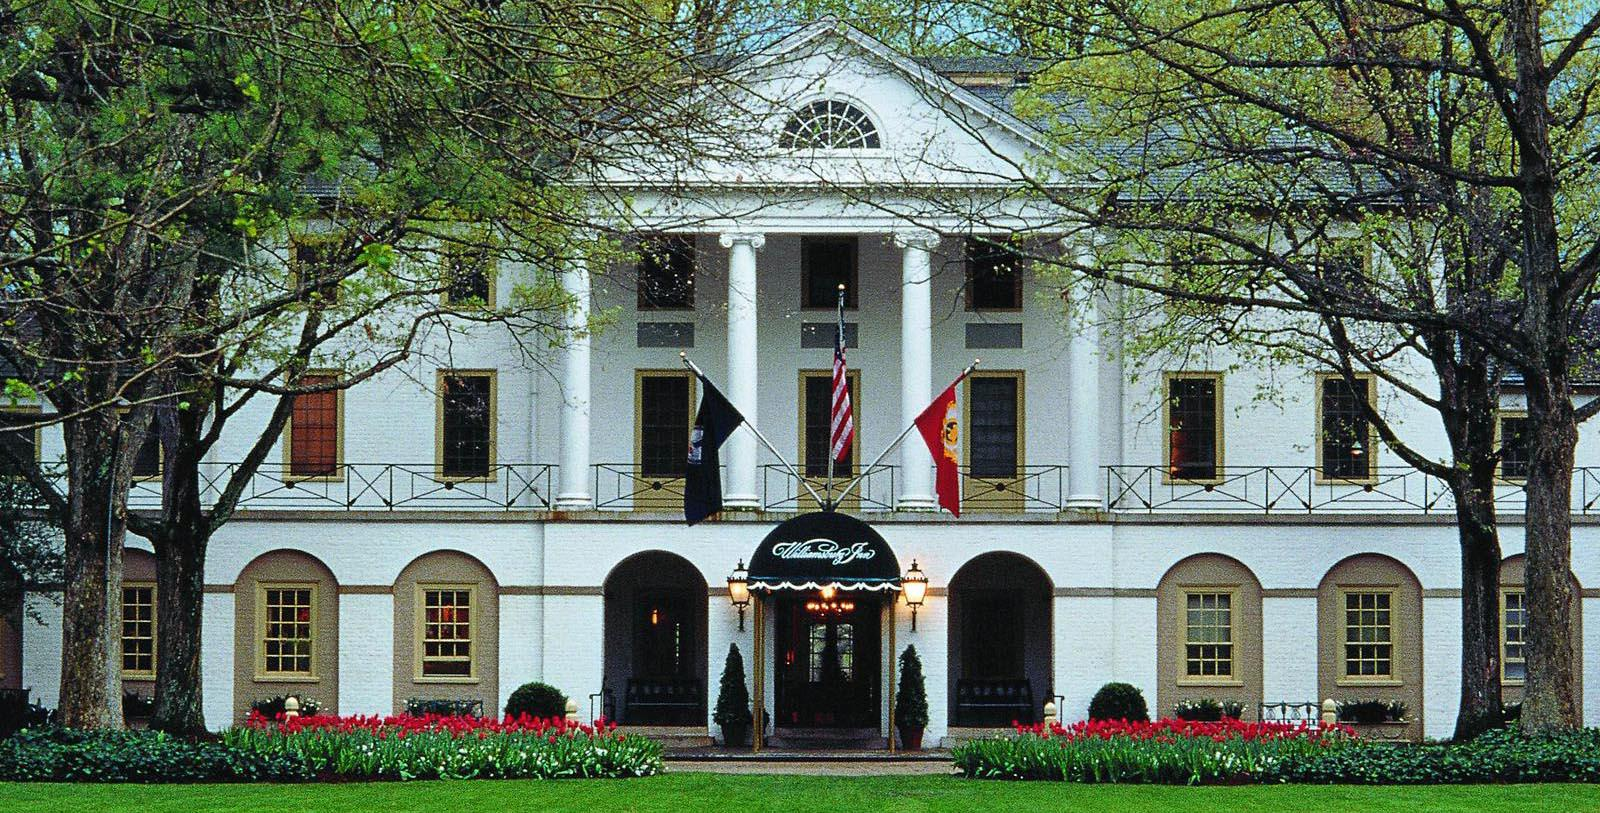 Image of hotel exterior at Williamsburg Inn, 1937, Member of Historic Hotels of America, in Williamsburg, Virginia,Discover